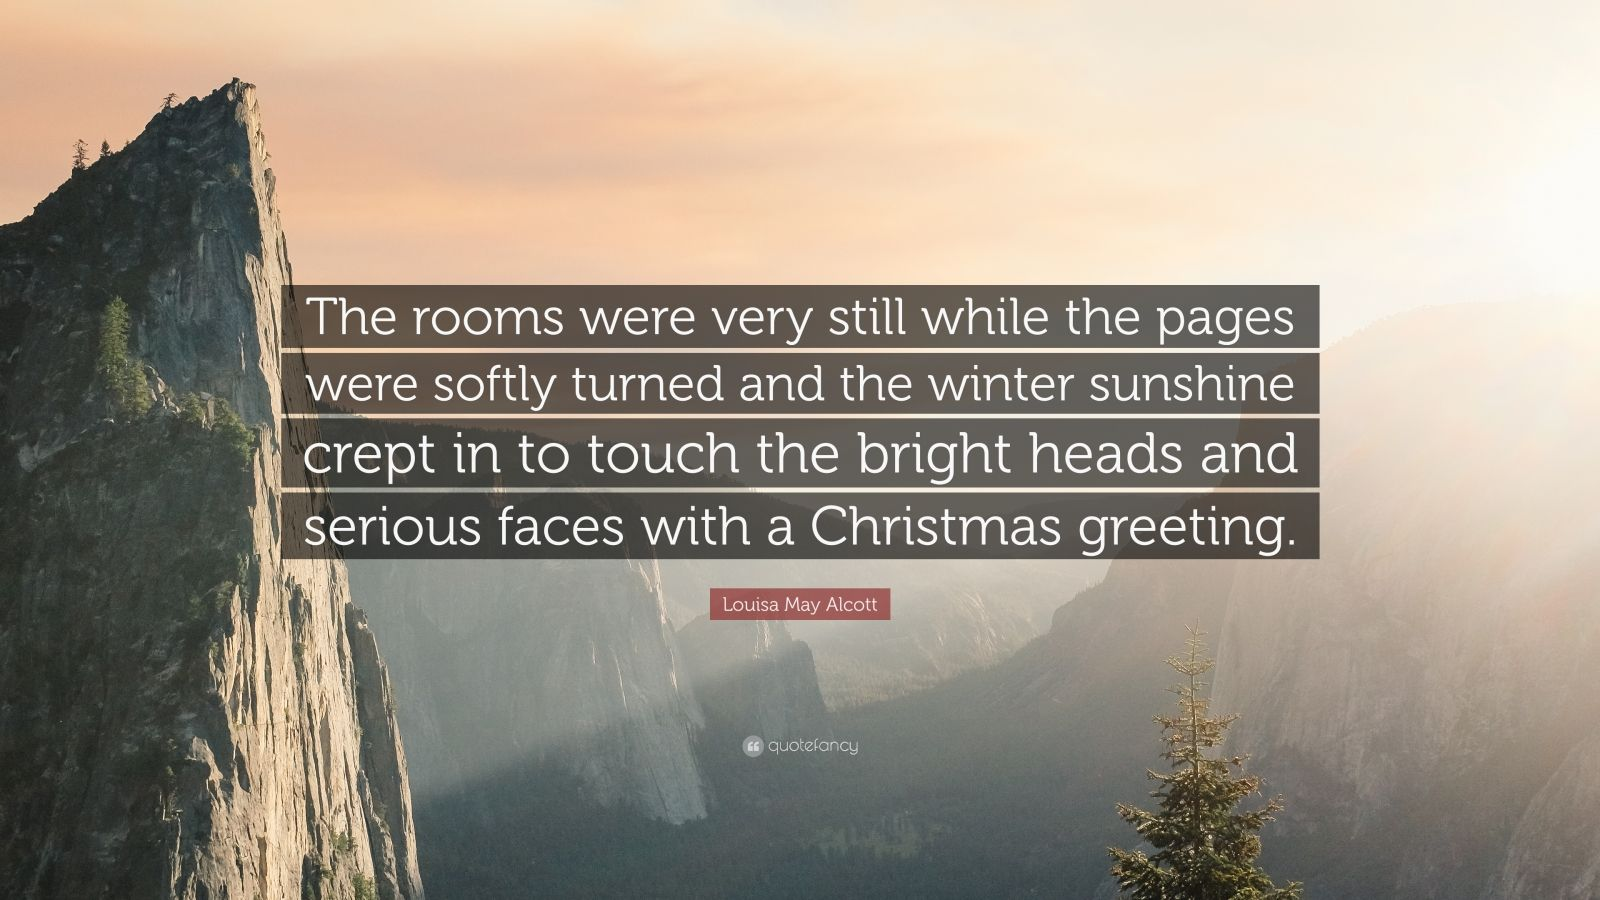 """Louisa May Alcott Quote: """"The rooms were very still while the pages were softly turned and the winter sunshine crept in to touch the bright heads and serious faces with a Christmas greeting."""""""